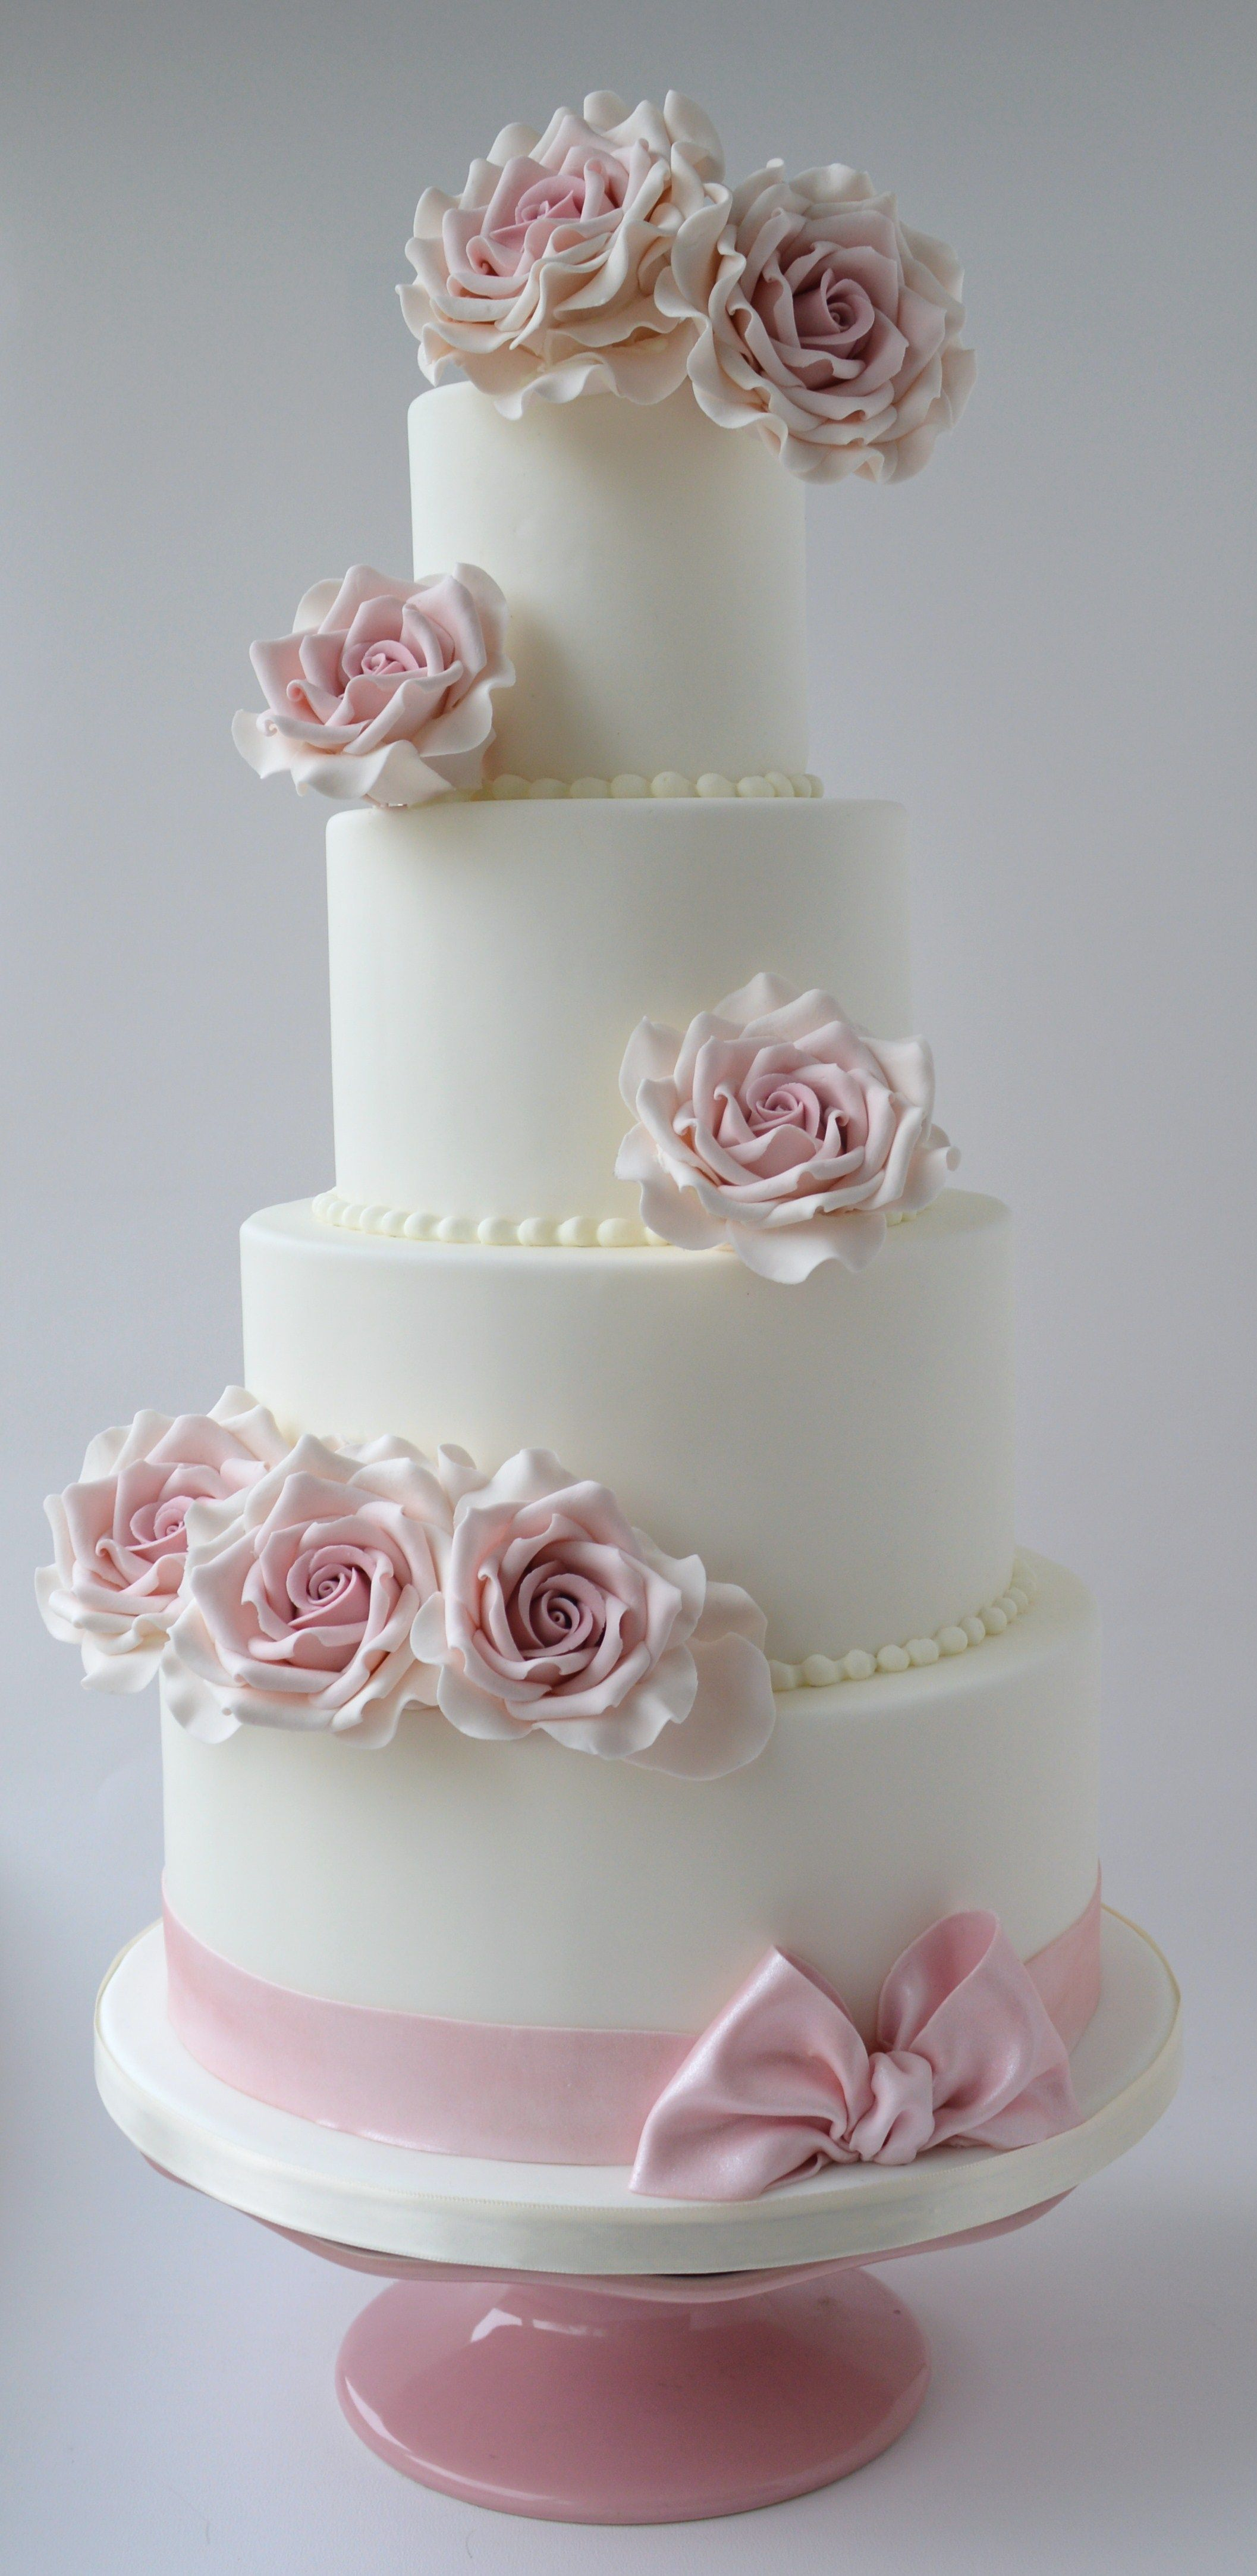 Roses with bow wedding cake x